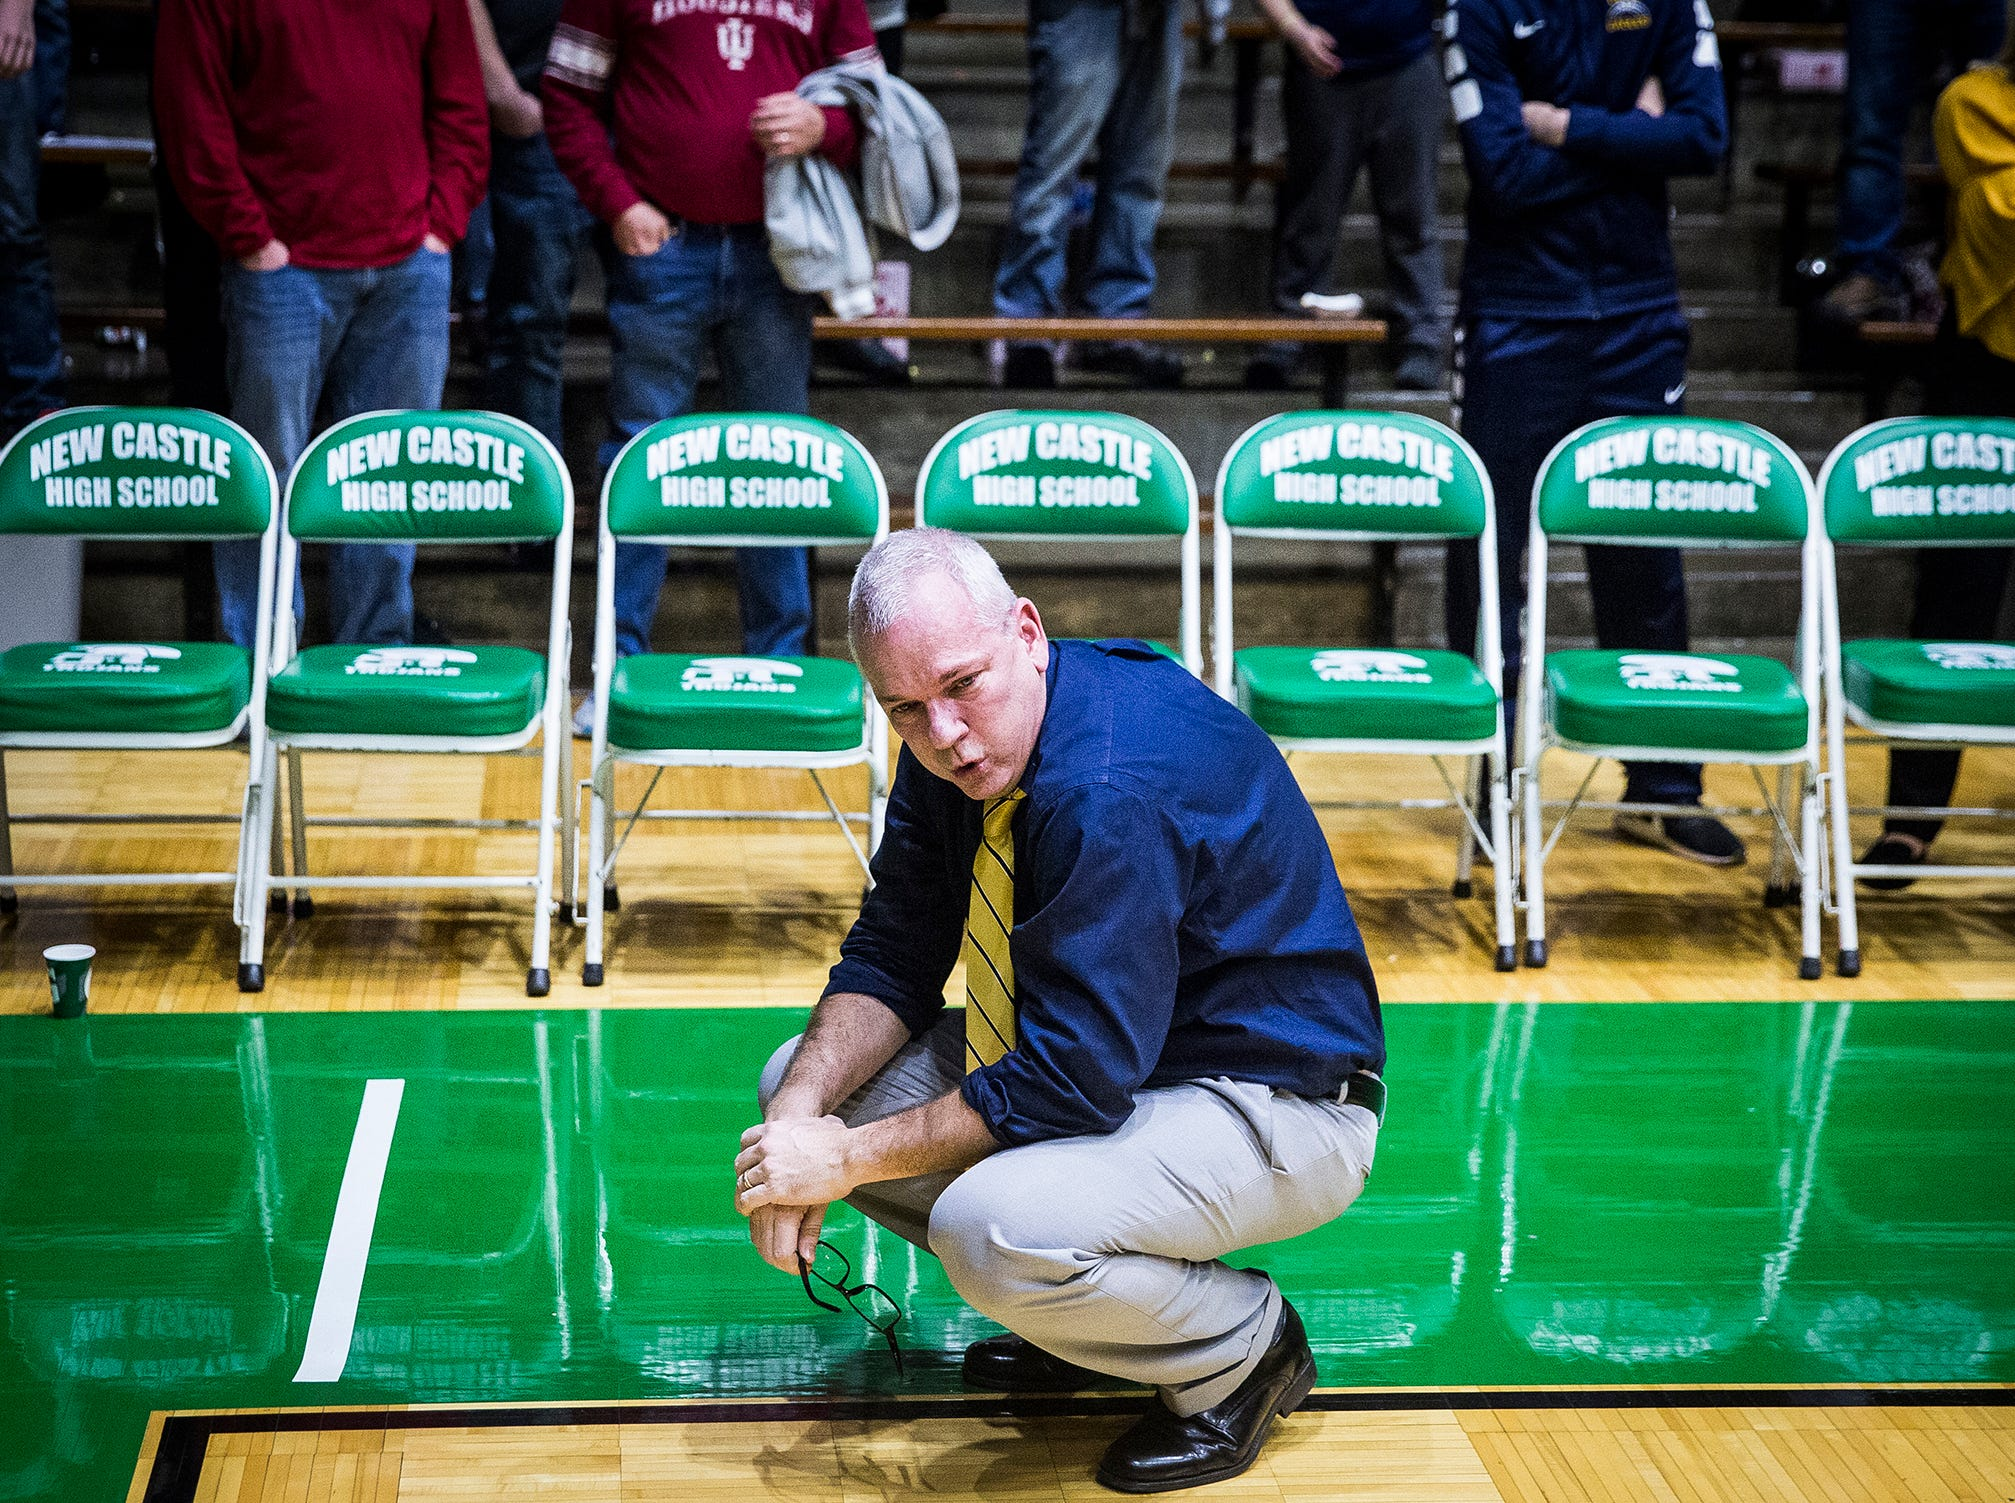 Delta head coach Mark Detweiler reacts after an narrow victory over New Castle during their sectional championship game at New Castle High School Saturday, March 2, 2019.